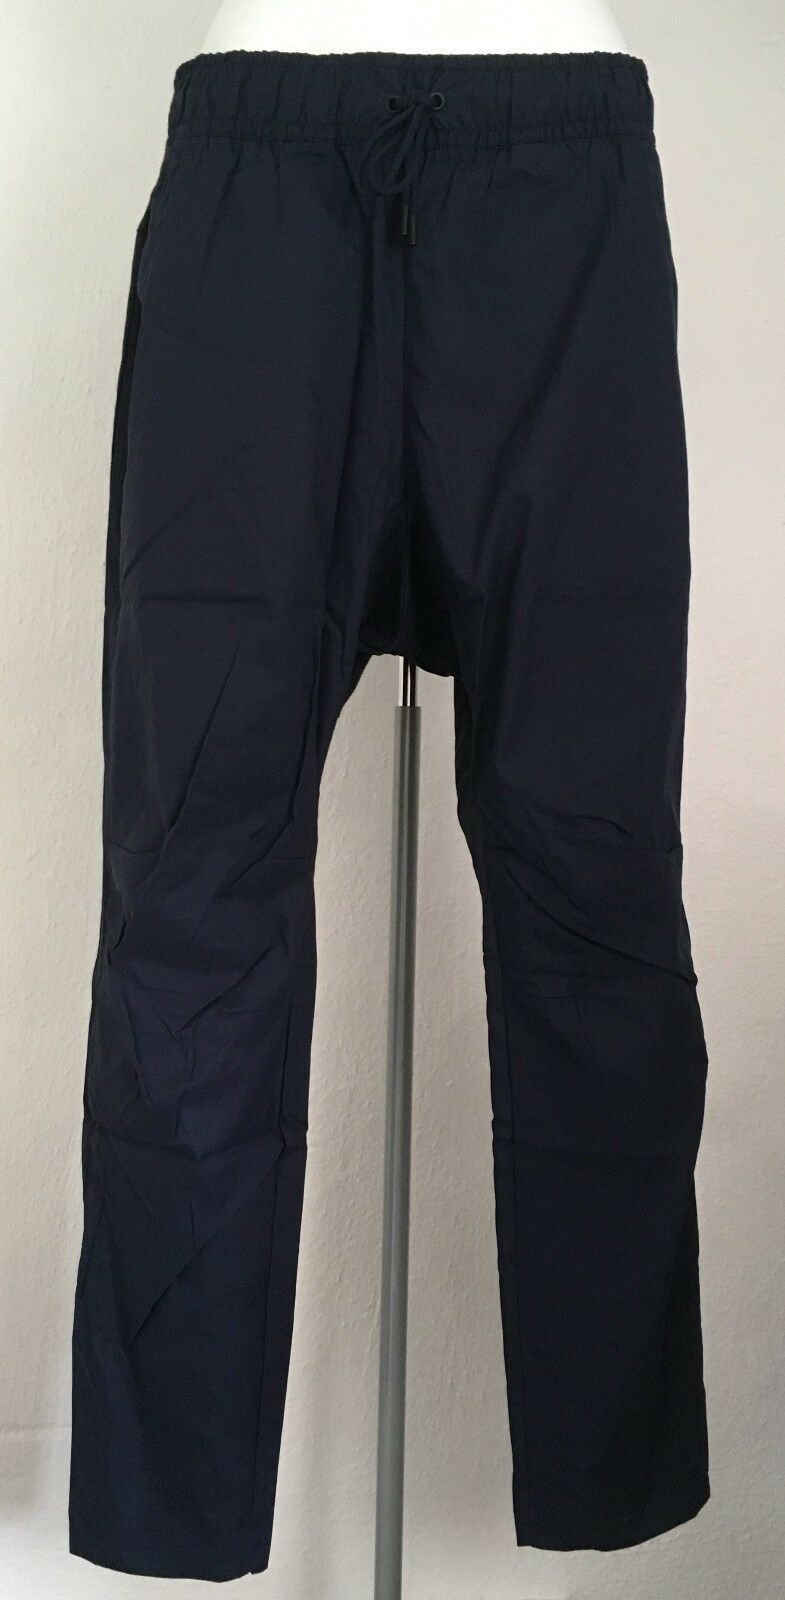 NIKE F C NAVY PANTS BY NIKE SIZE ADULTS XL BRAND NEW WITH TAGS